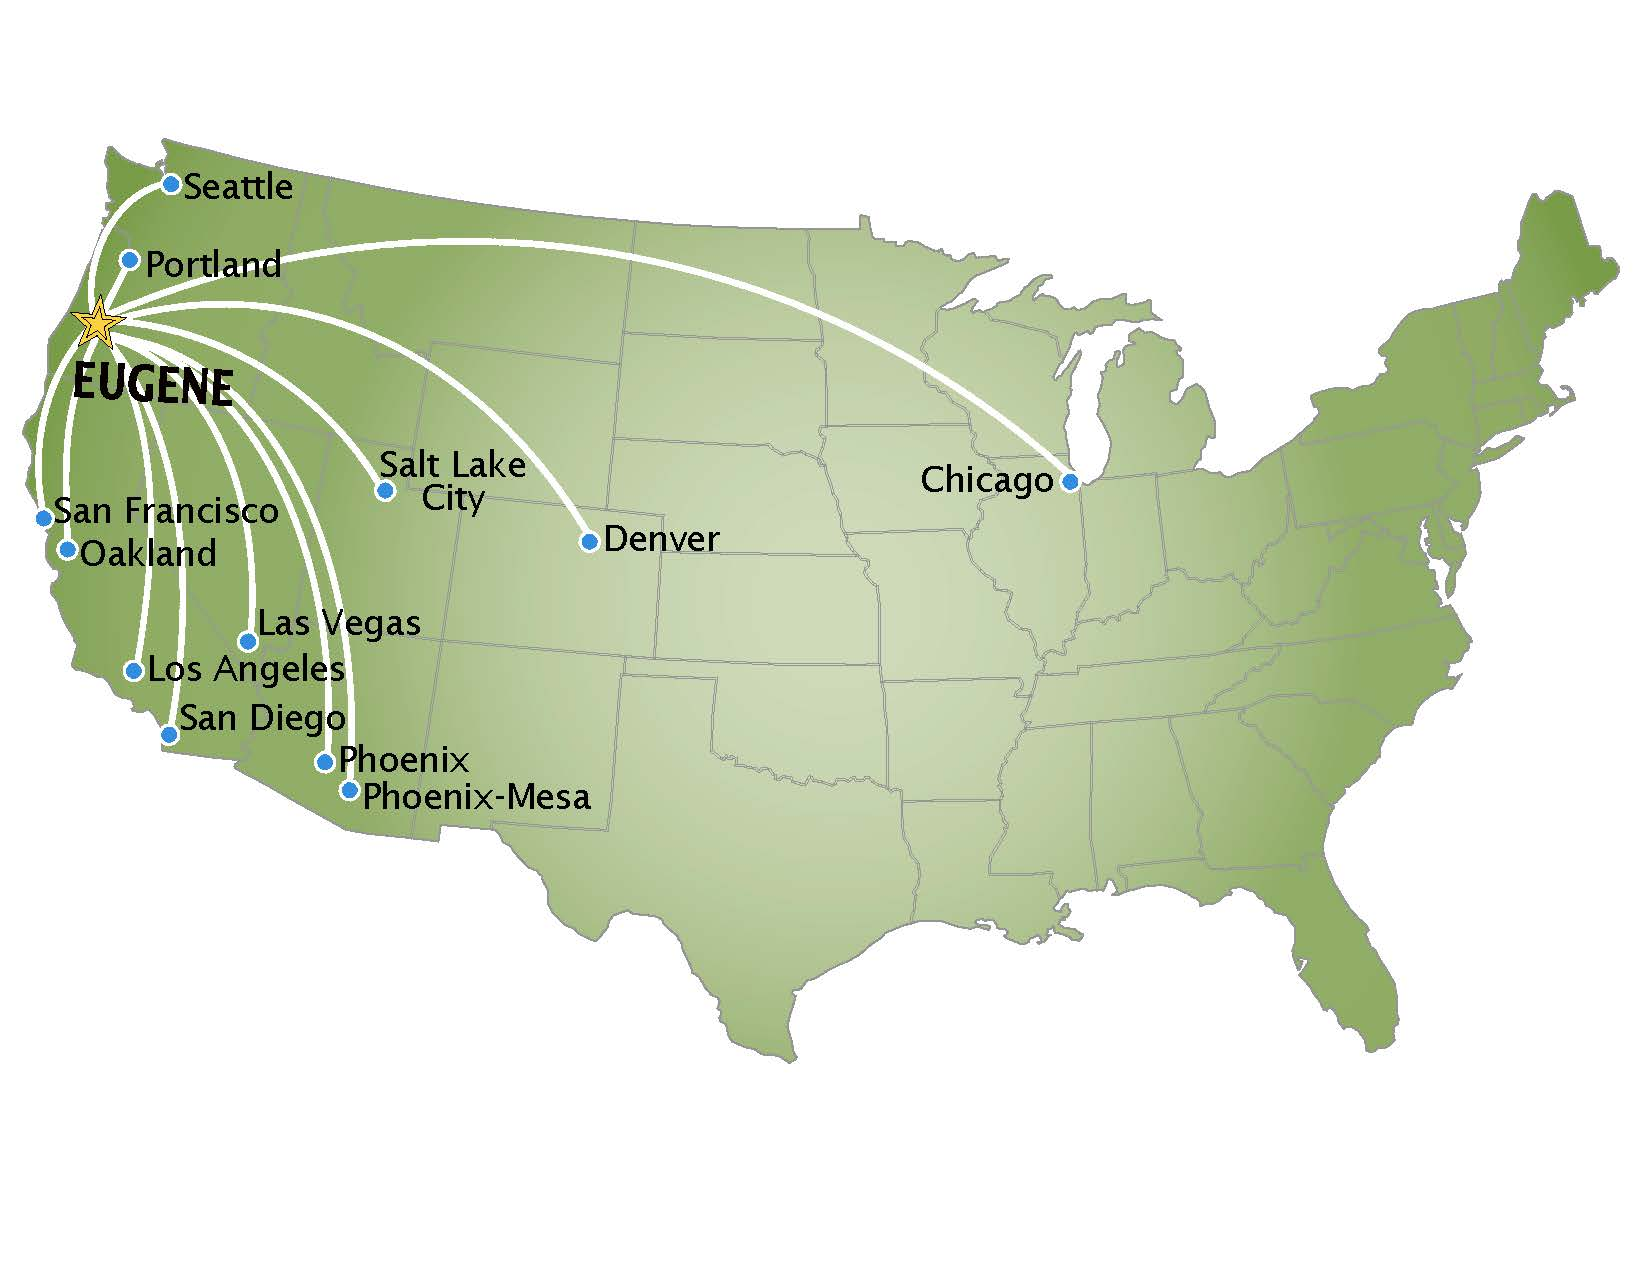 Airport_RouteMap_2019_Nonstop_Flights_from_Eugene